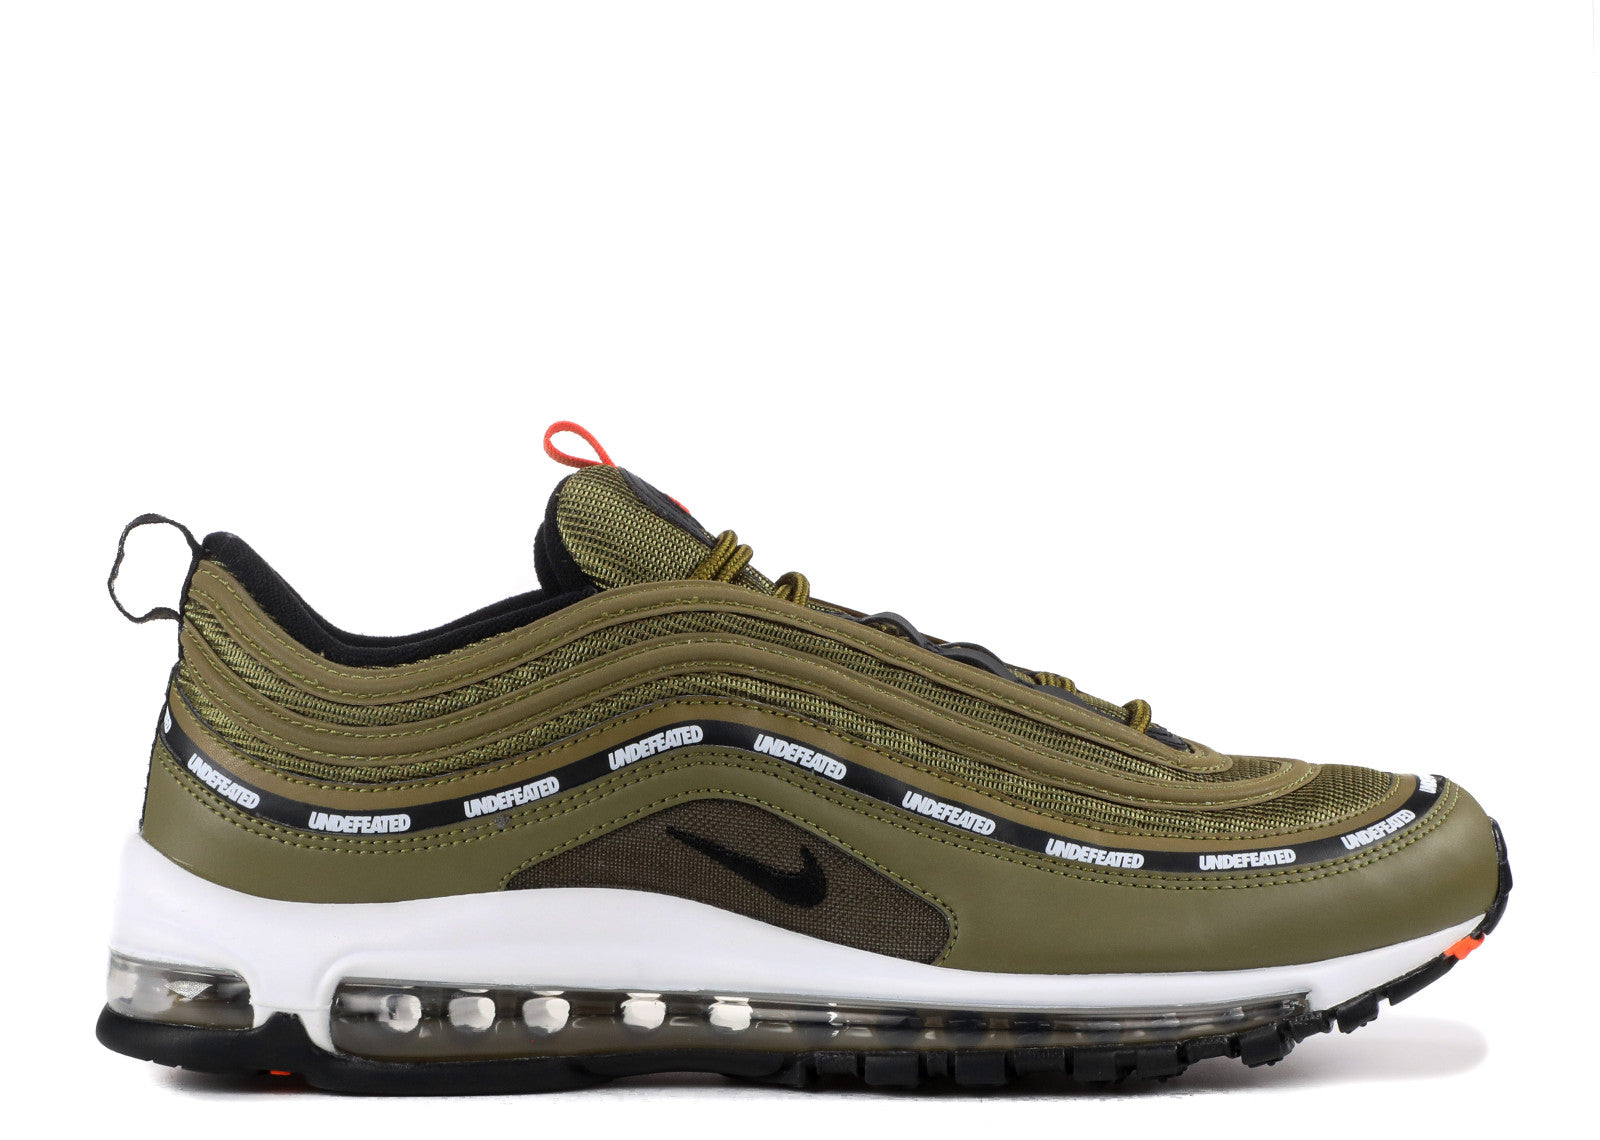 release date 82353 68c6e Air Max 97 Undefeated Complexcon Exclusive